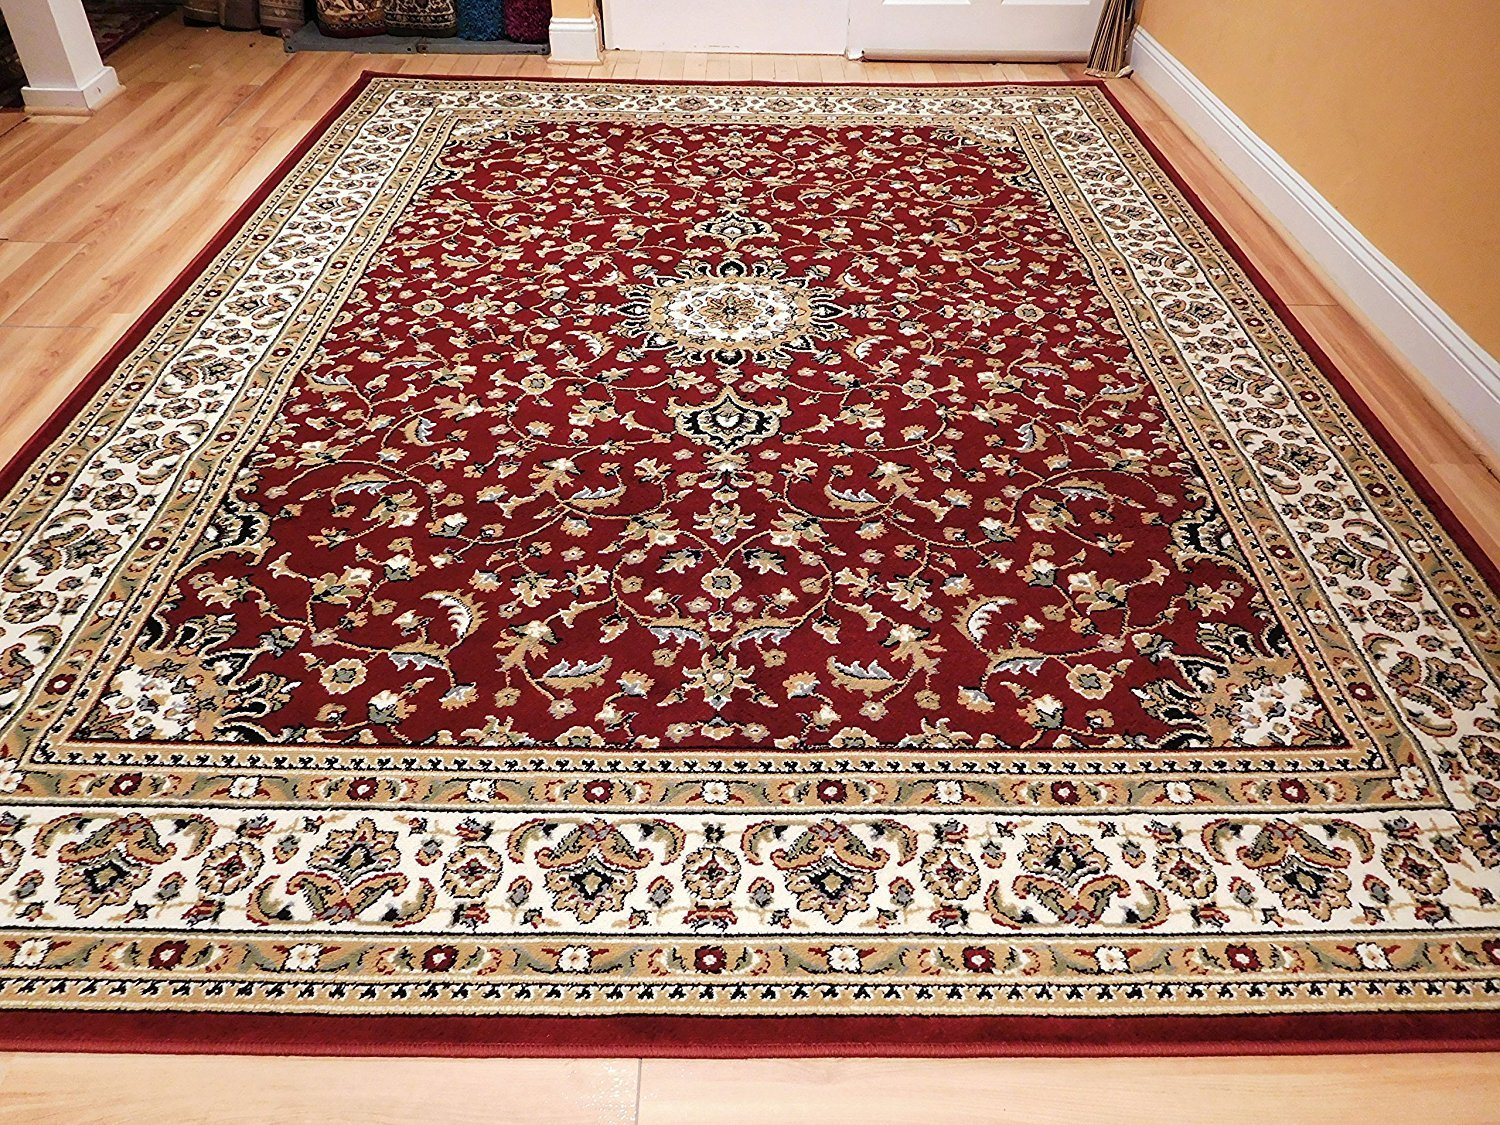 floor rugs amazon.com: large 8x11 area rug for living room red 8x10 traditional rug TWBBKNP